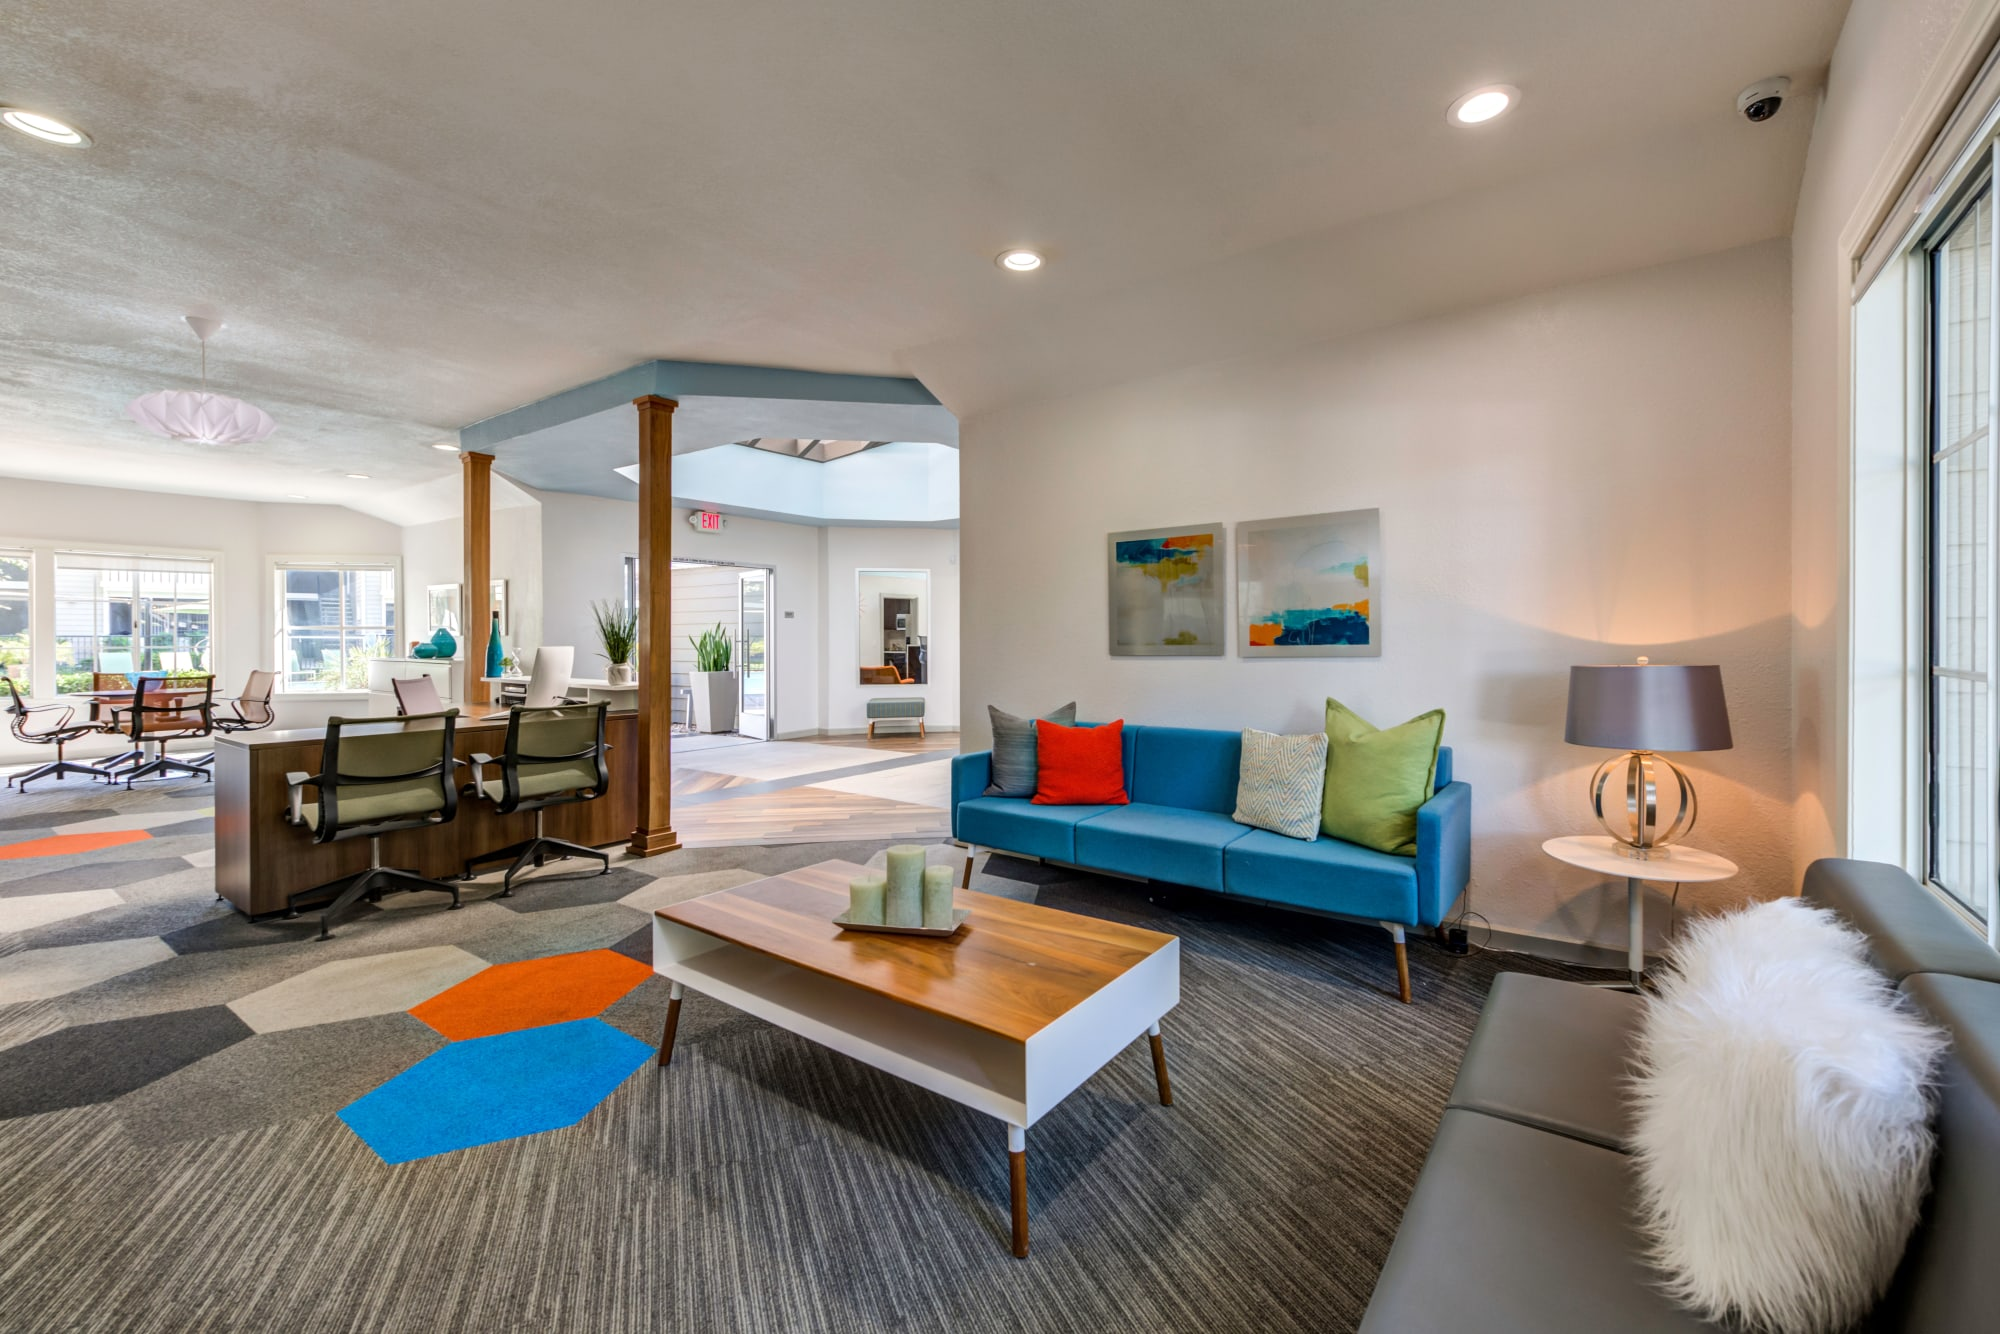 Clubhouse lounge area at Village Oaks in Chino Hills, California